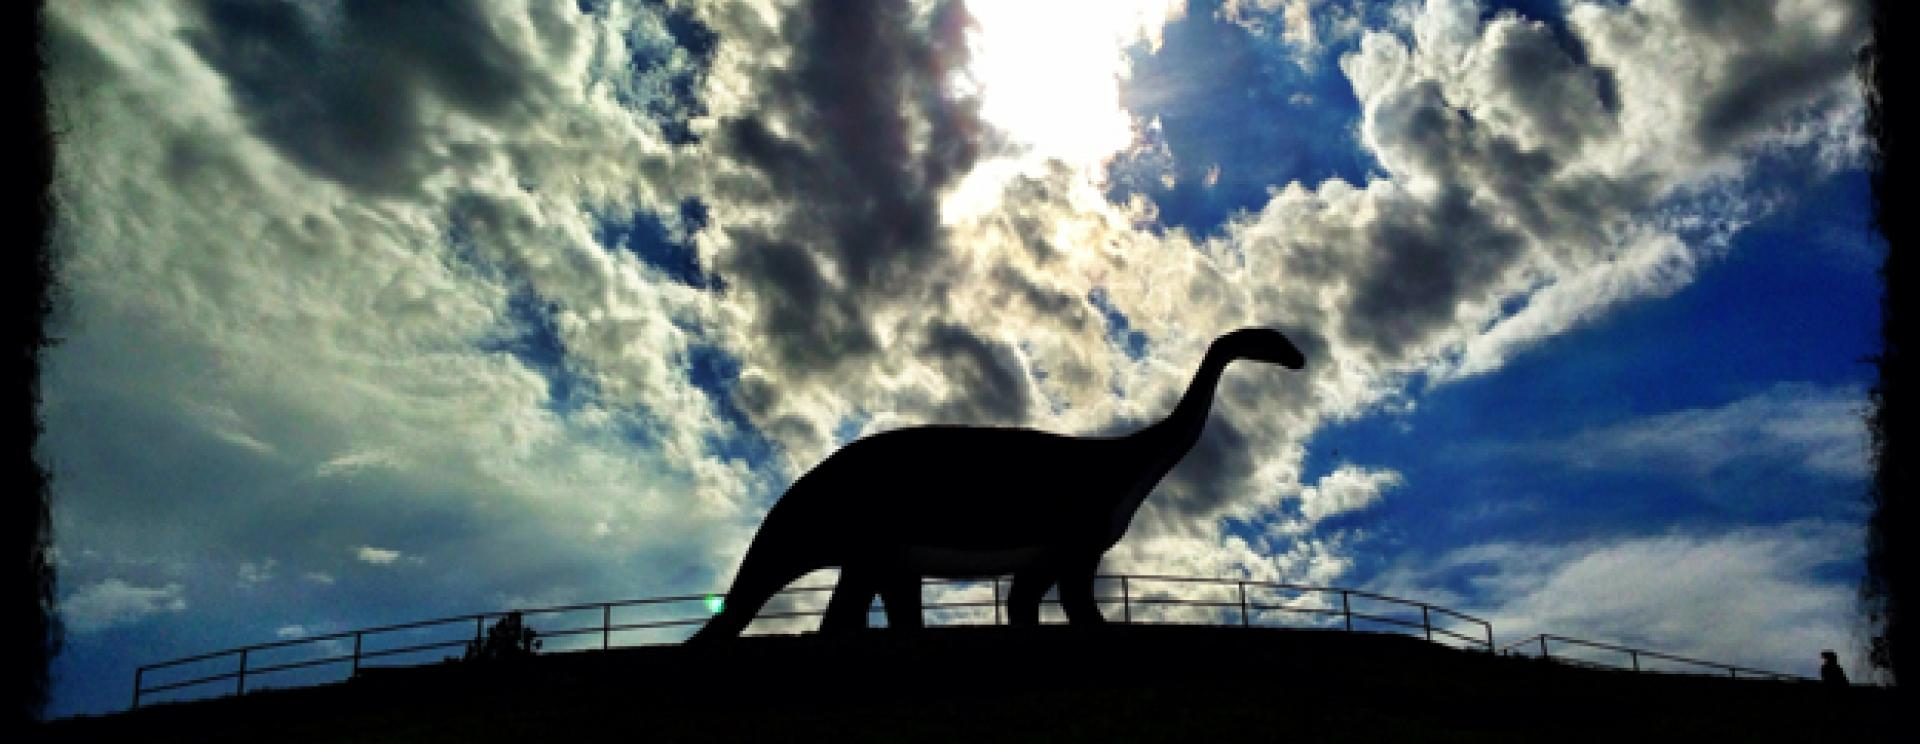 Up to the Top at Dinosaur Park